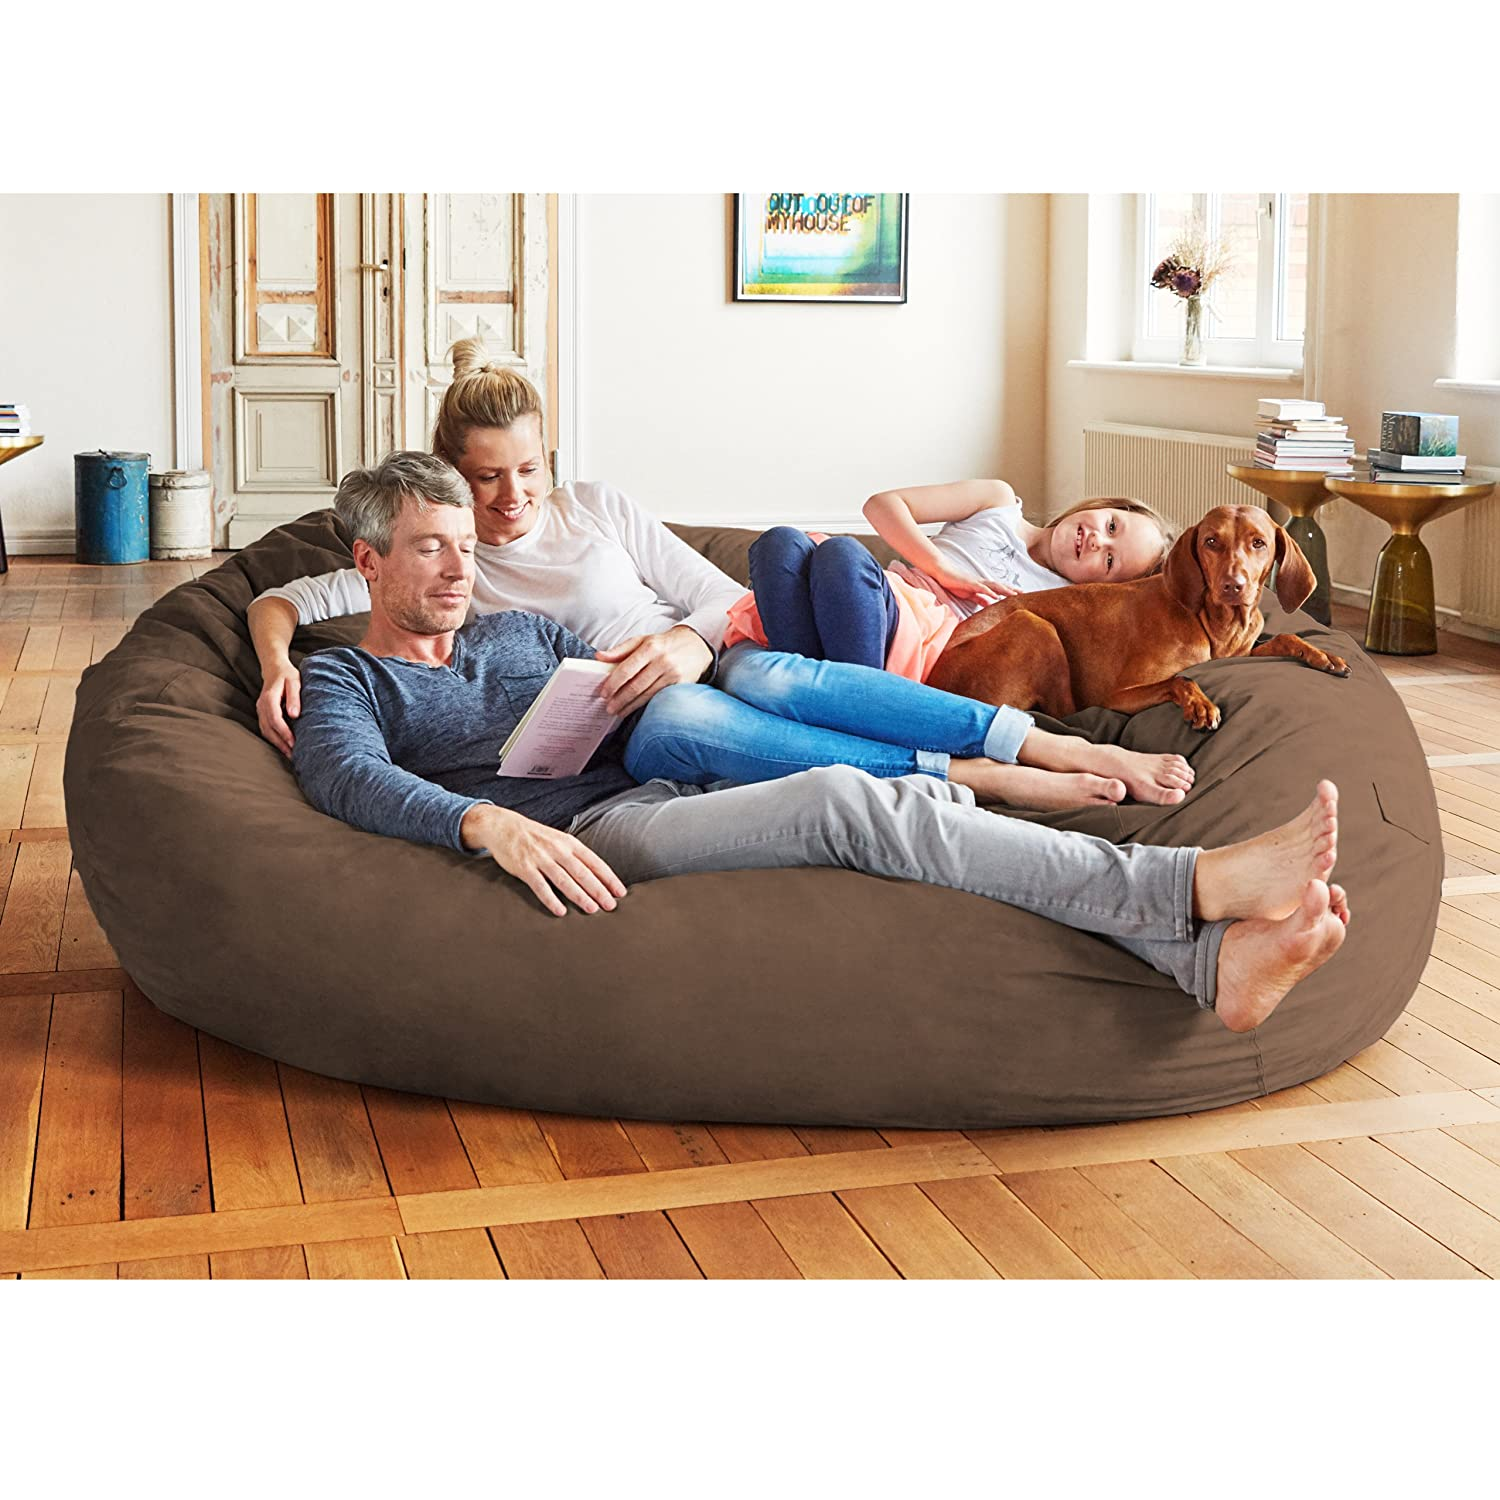 Amazon Lumaland Luxury 7 Foot Bean Bag Chair with Microsuede